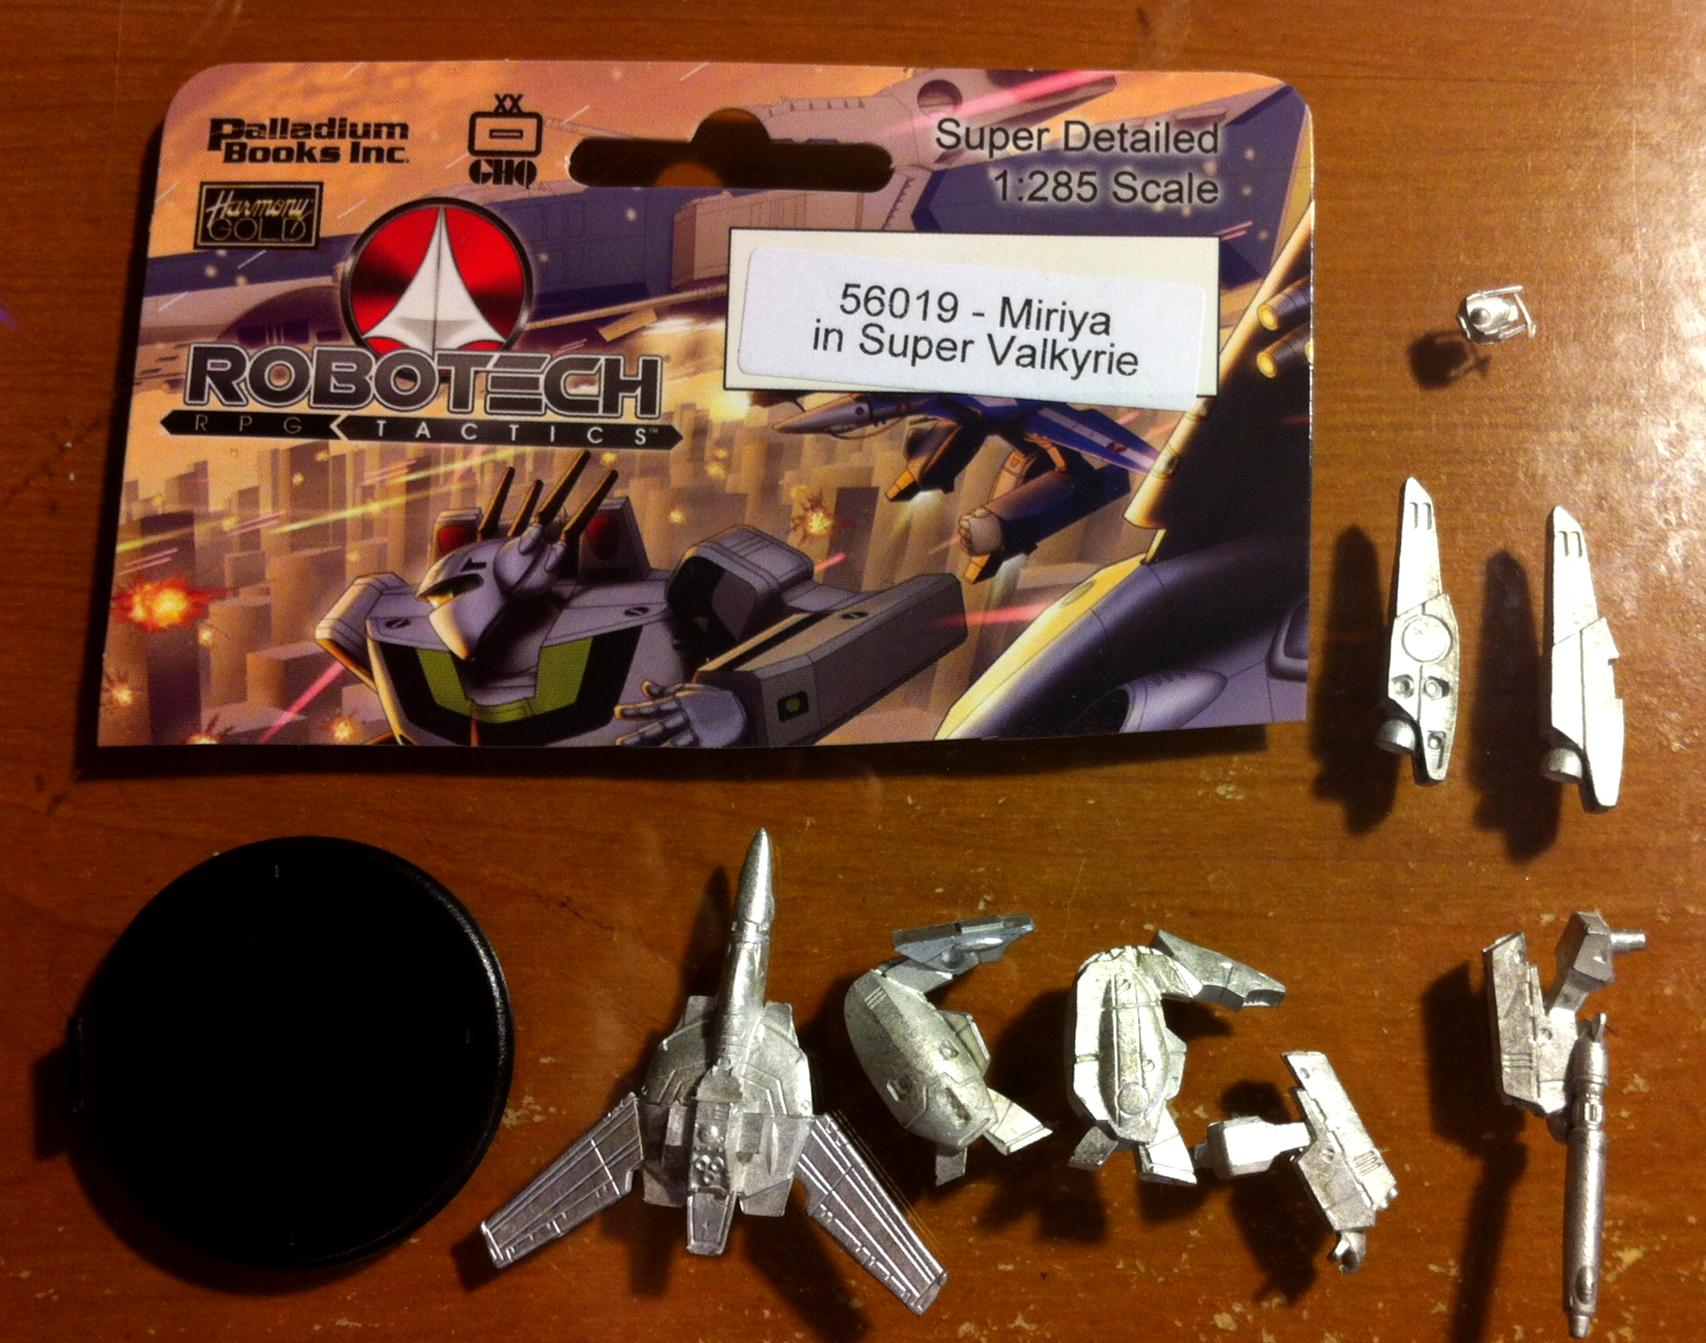 Backer, Figure, Palladium, Promotional, Robotech